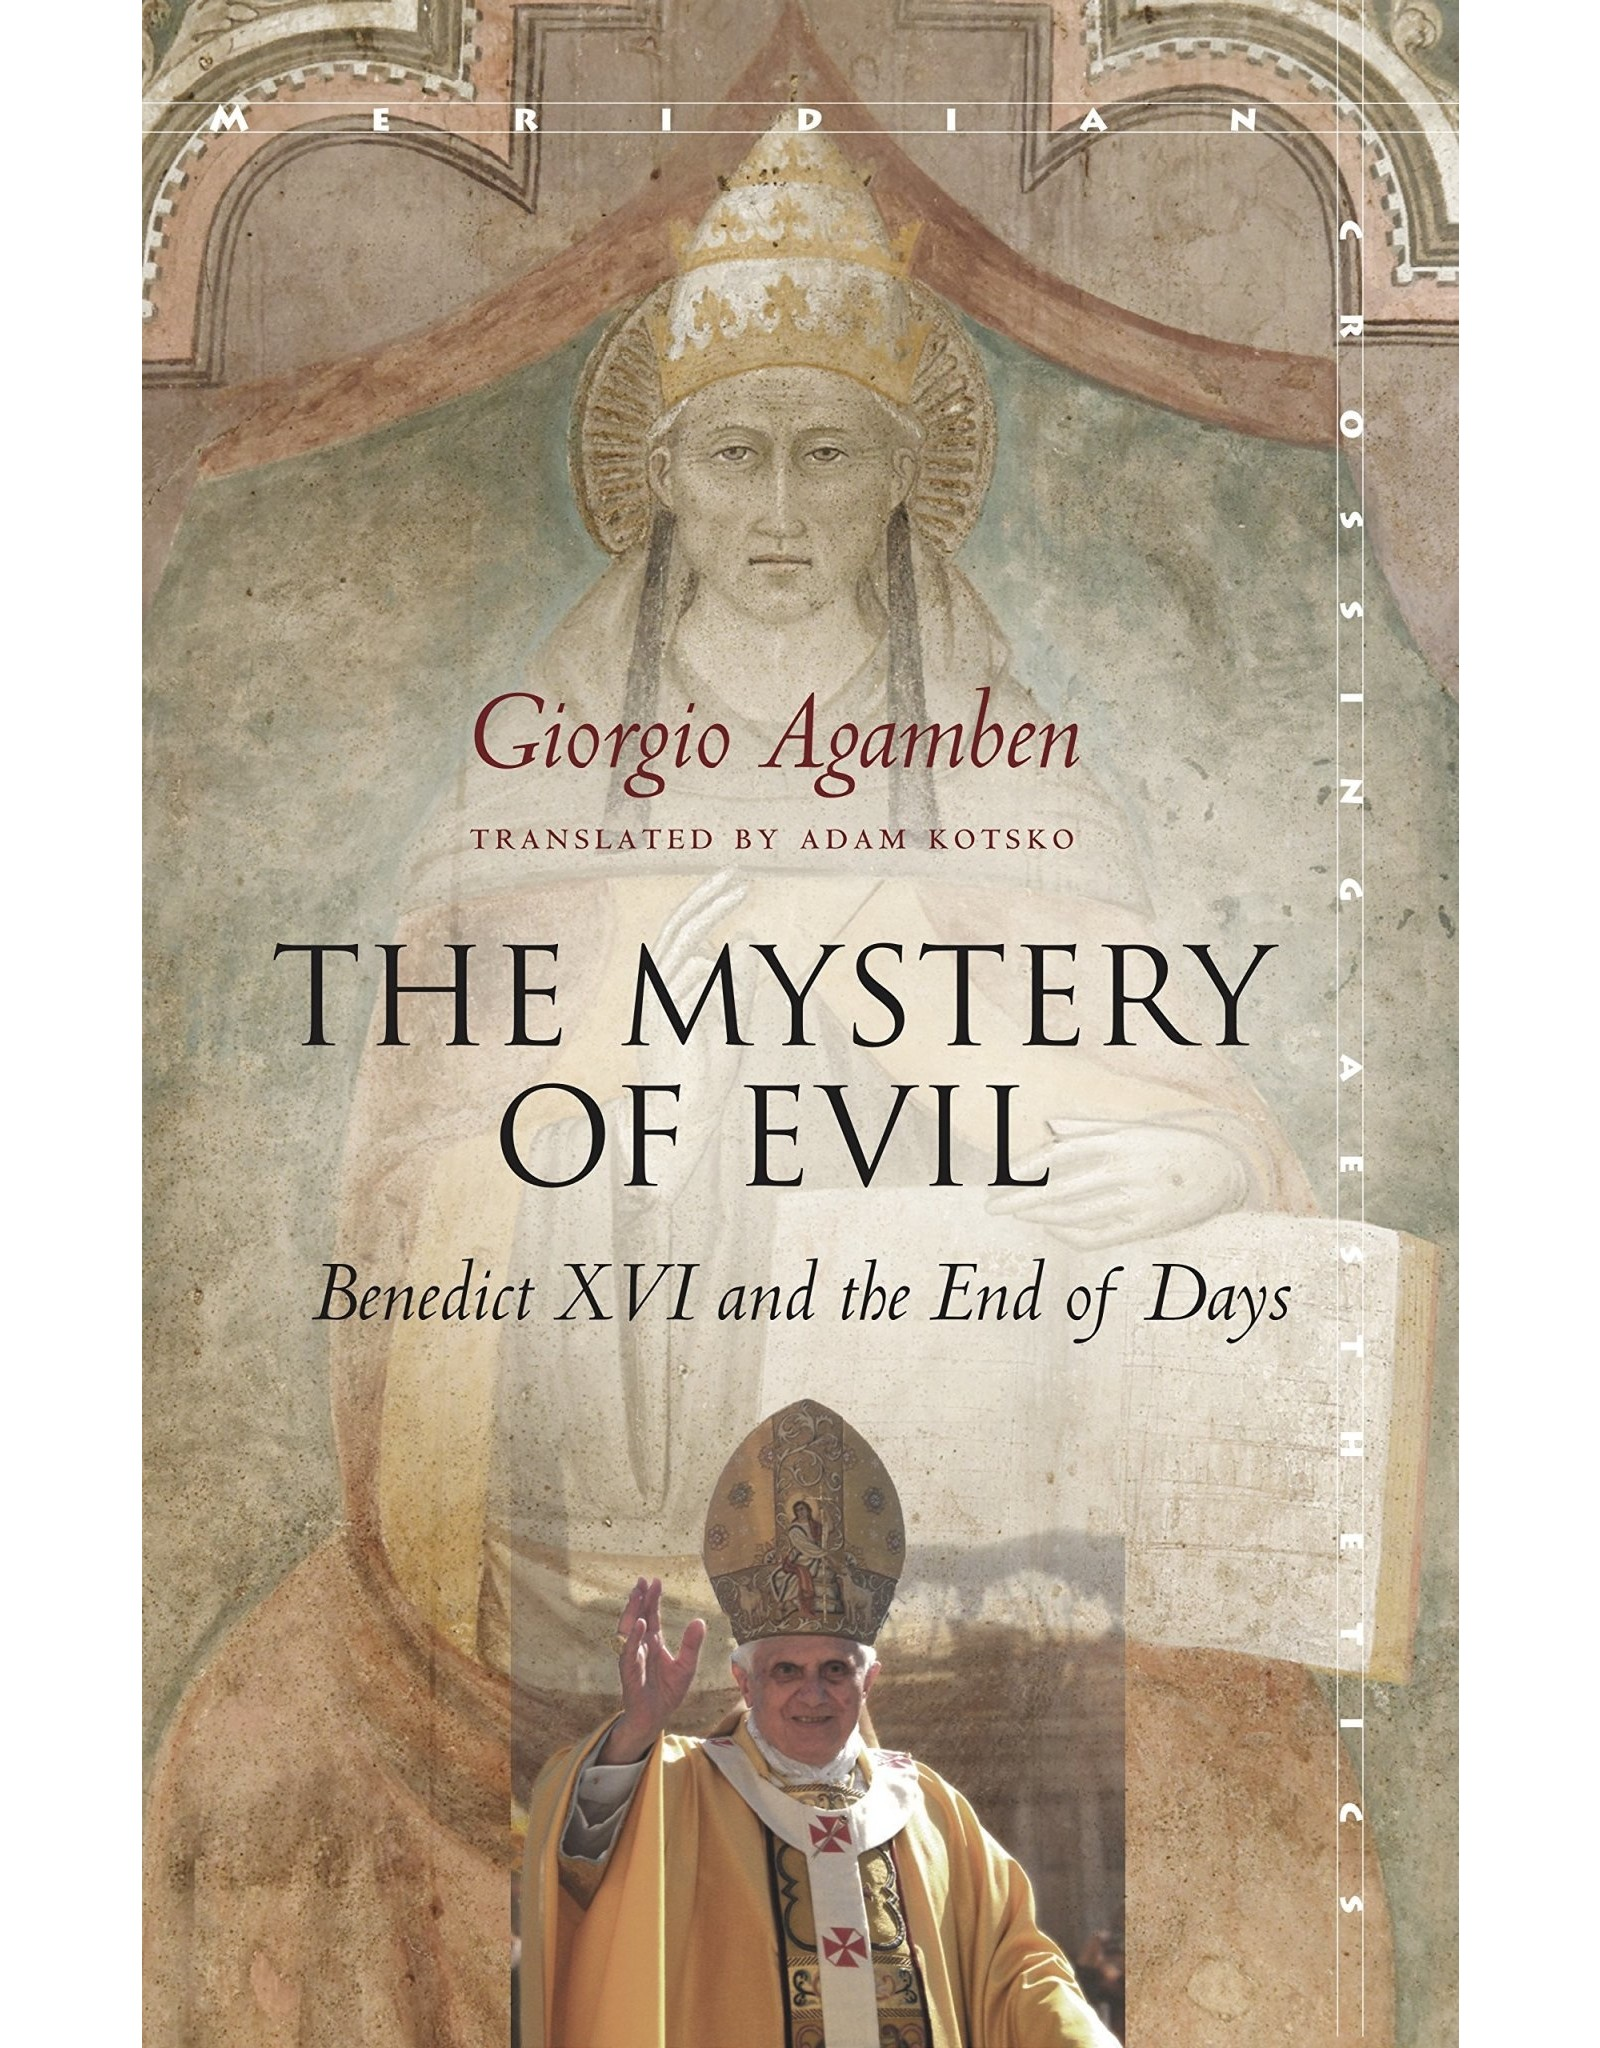 The Mystery of Evil: Benedict XVI & the End of Days